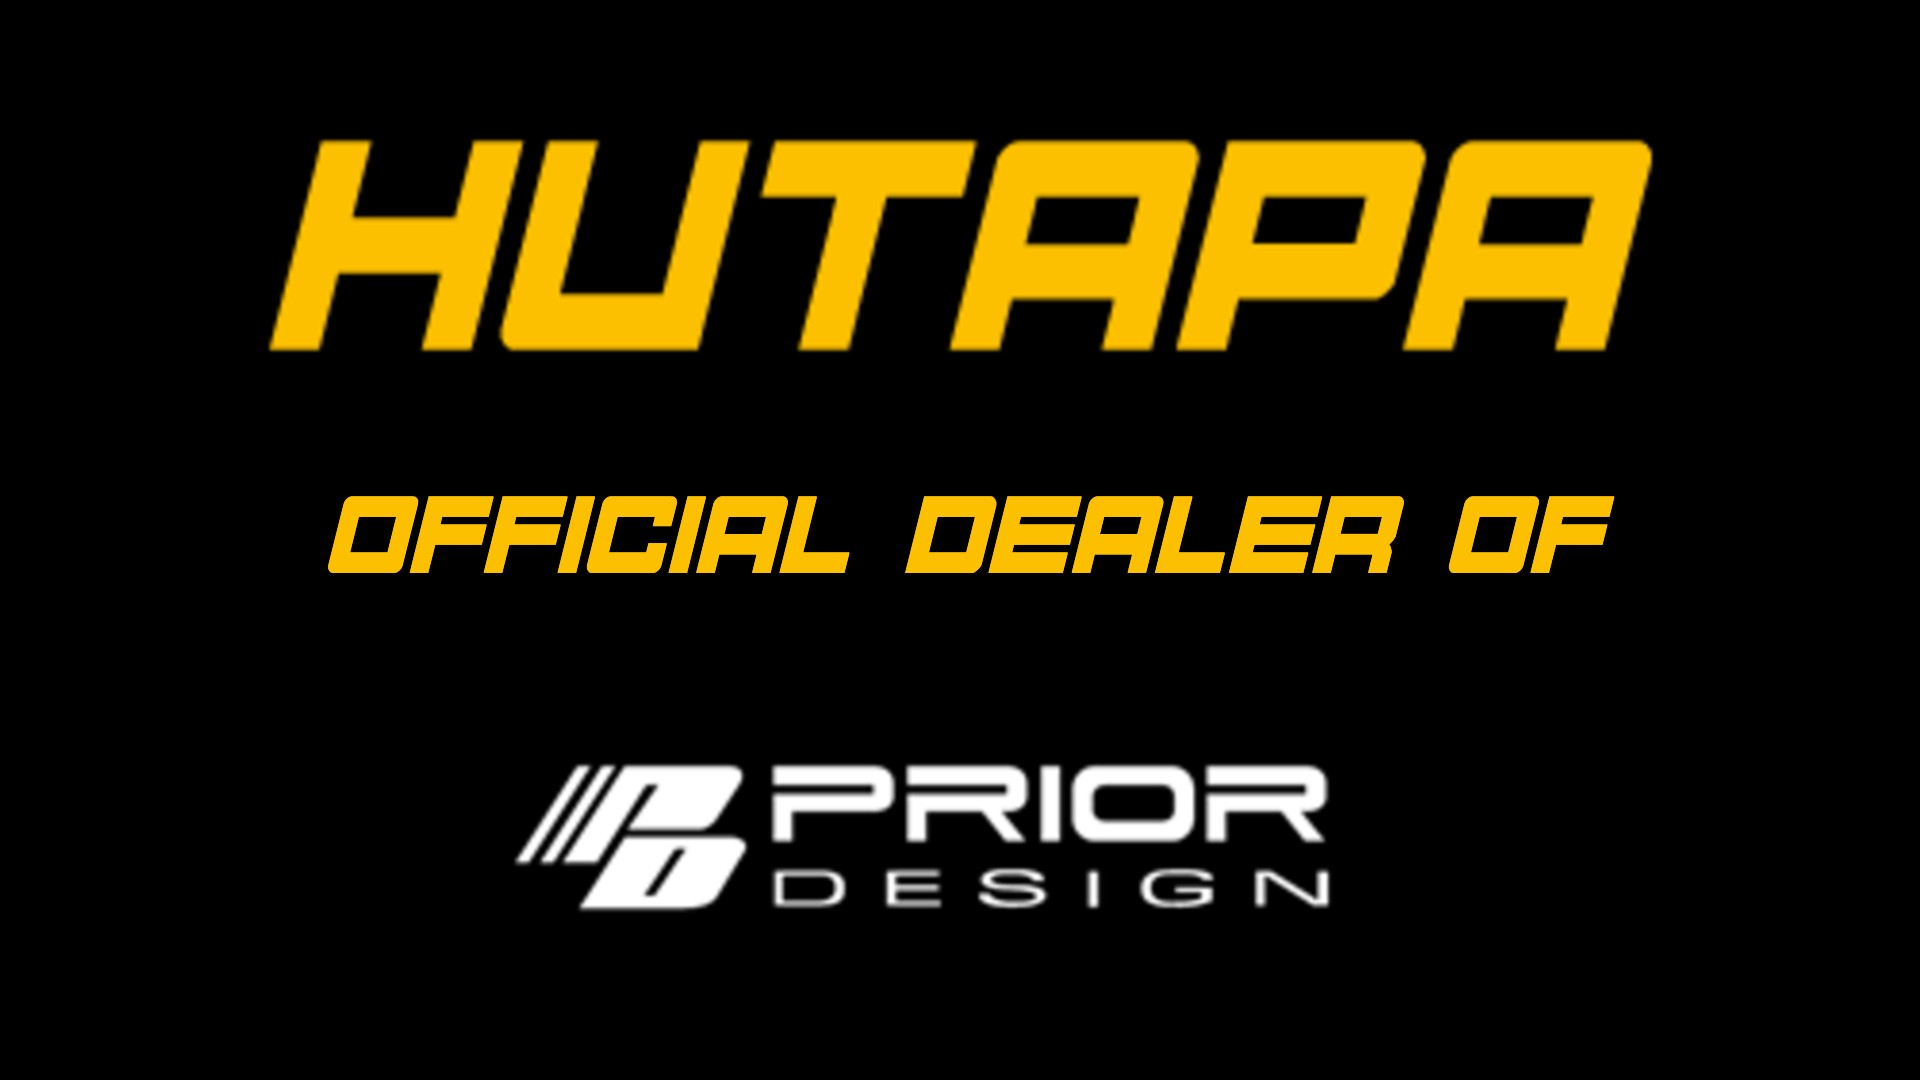 Hutapa official dealer of Prior - Autogarage Hutapa